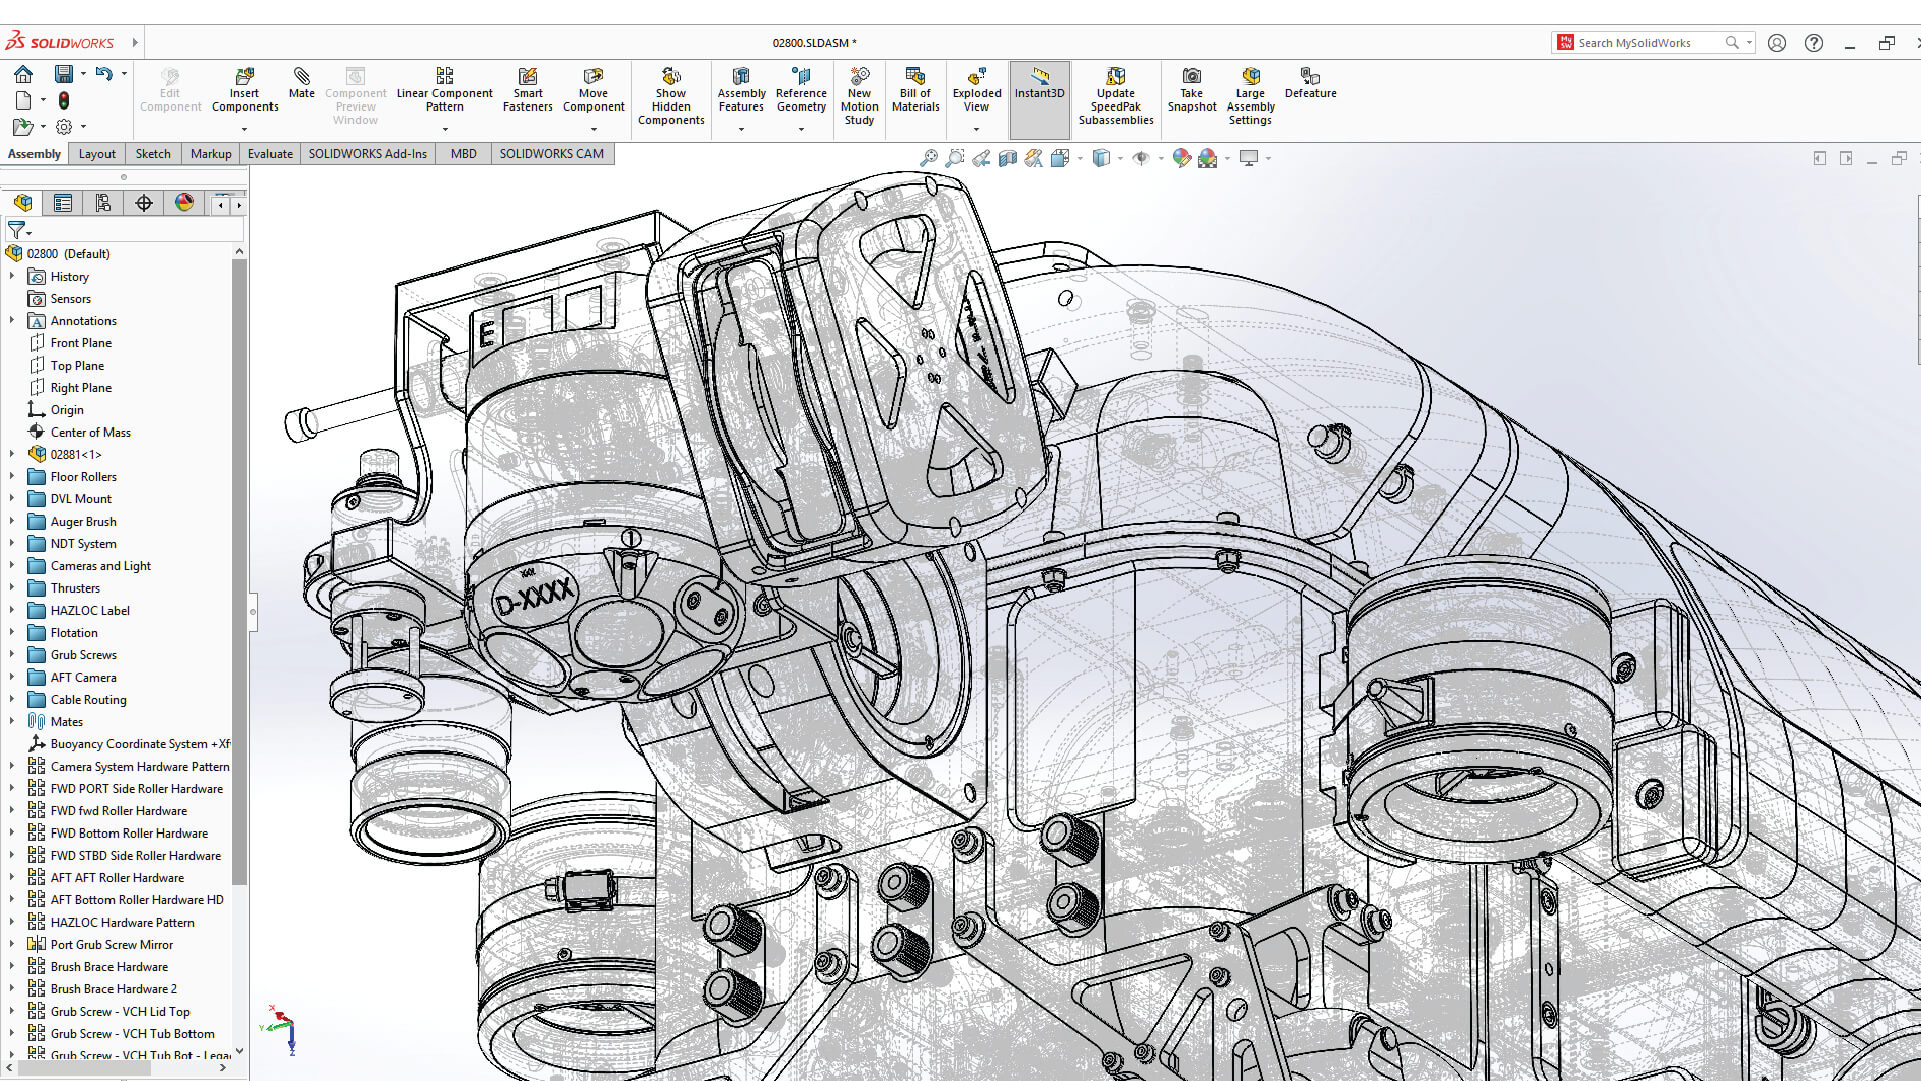 SOLIDWORKS Display mode